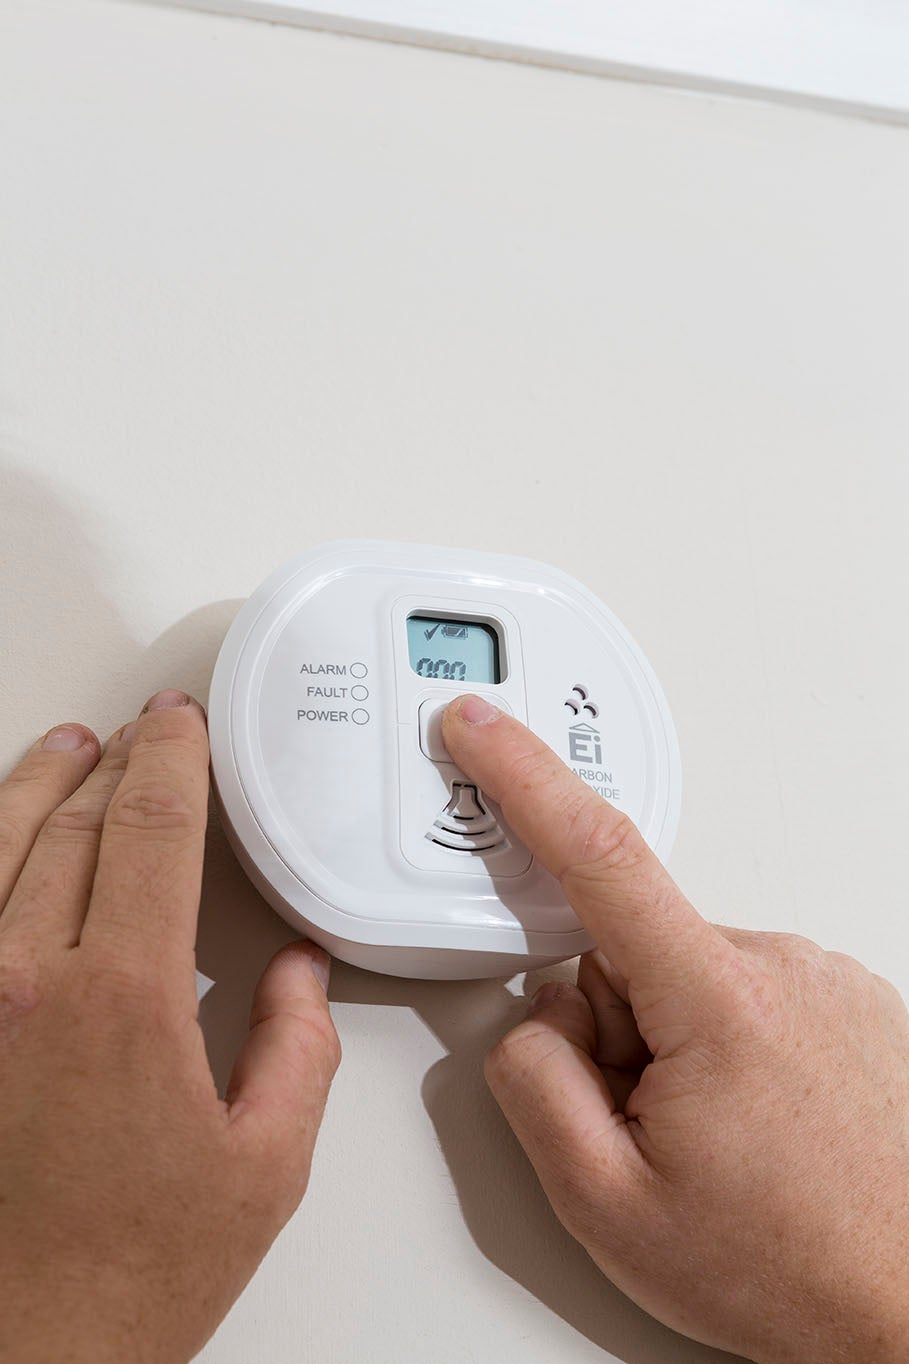 A man presses a button on a carbon monoxide alarm to check it is working